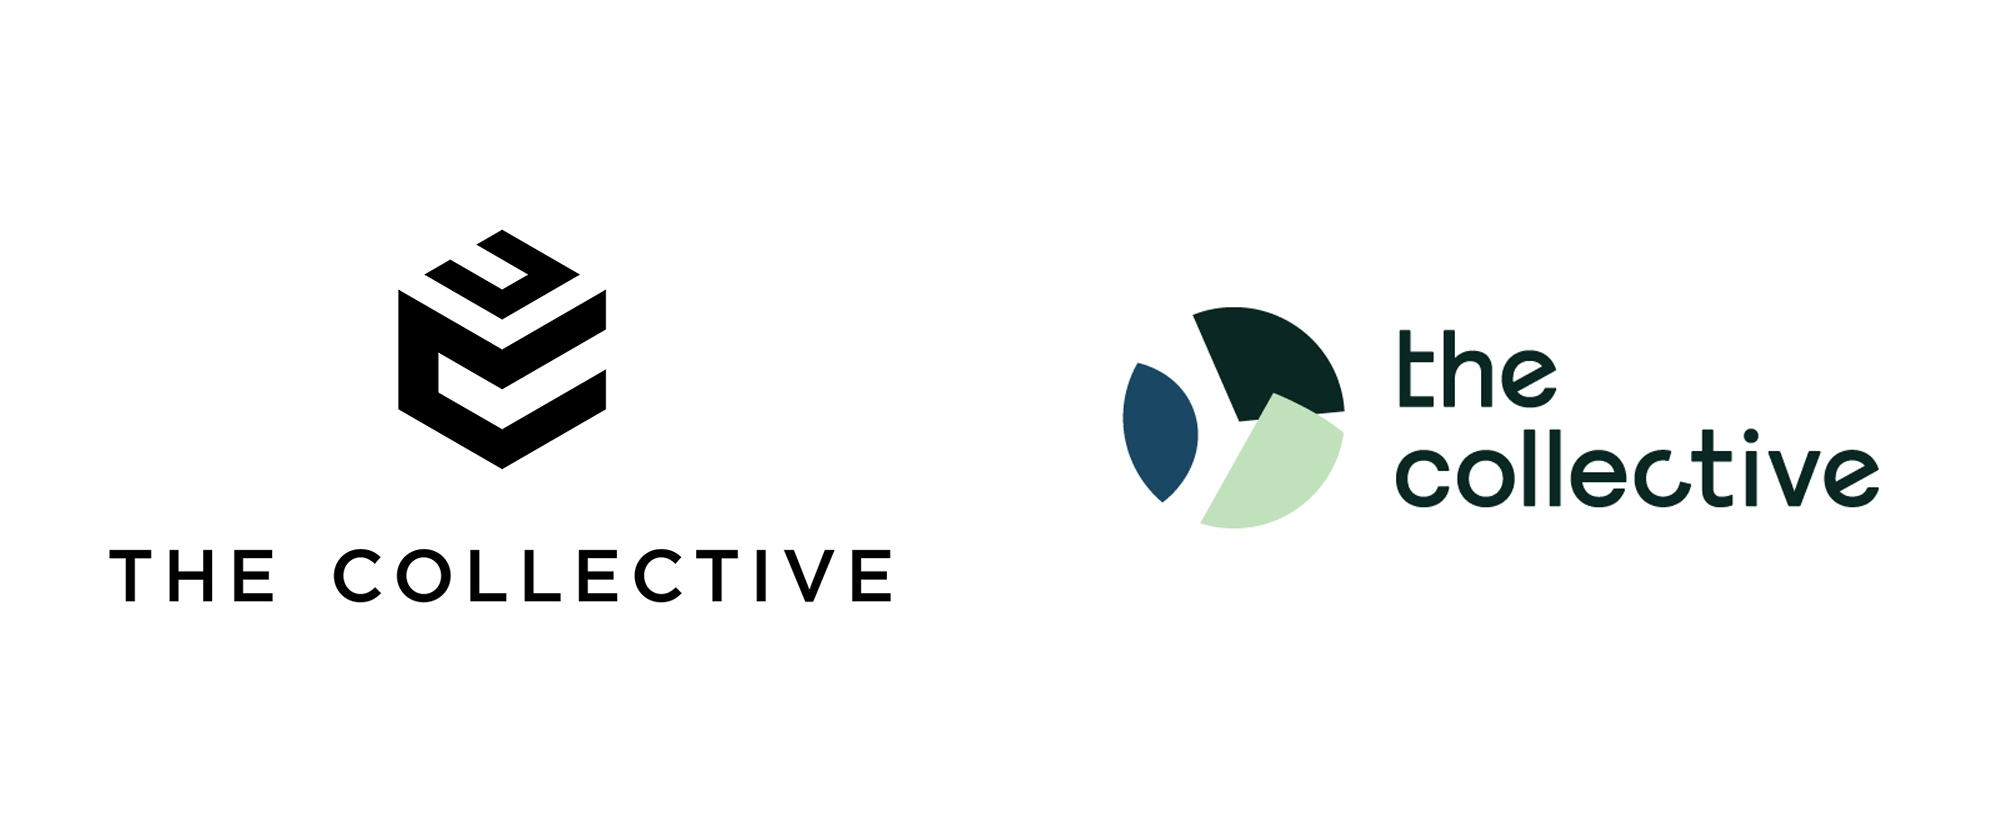 New Logo and Identity for The Collective by DesignStudio